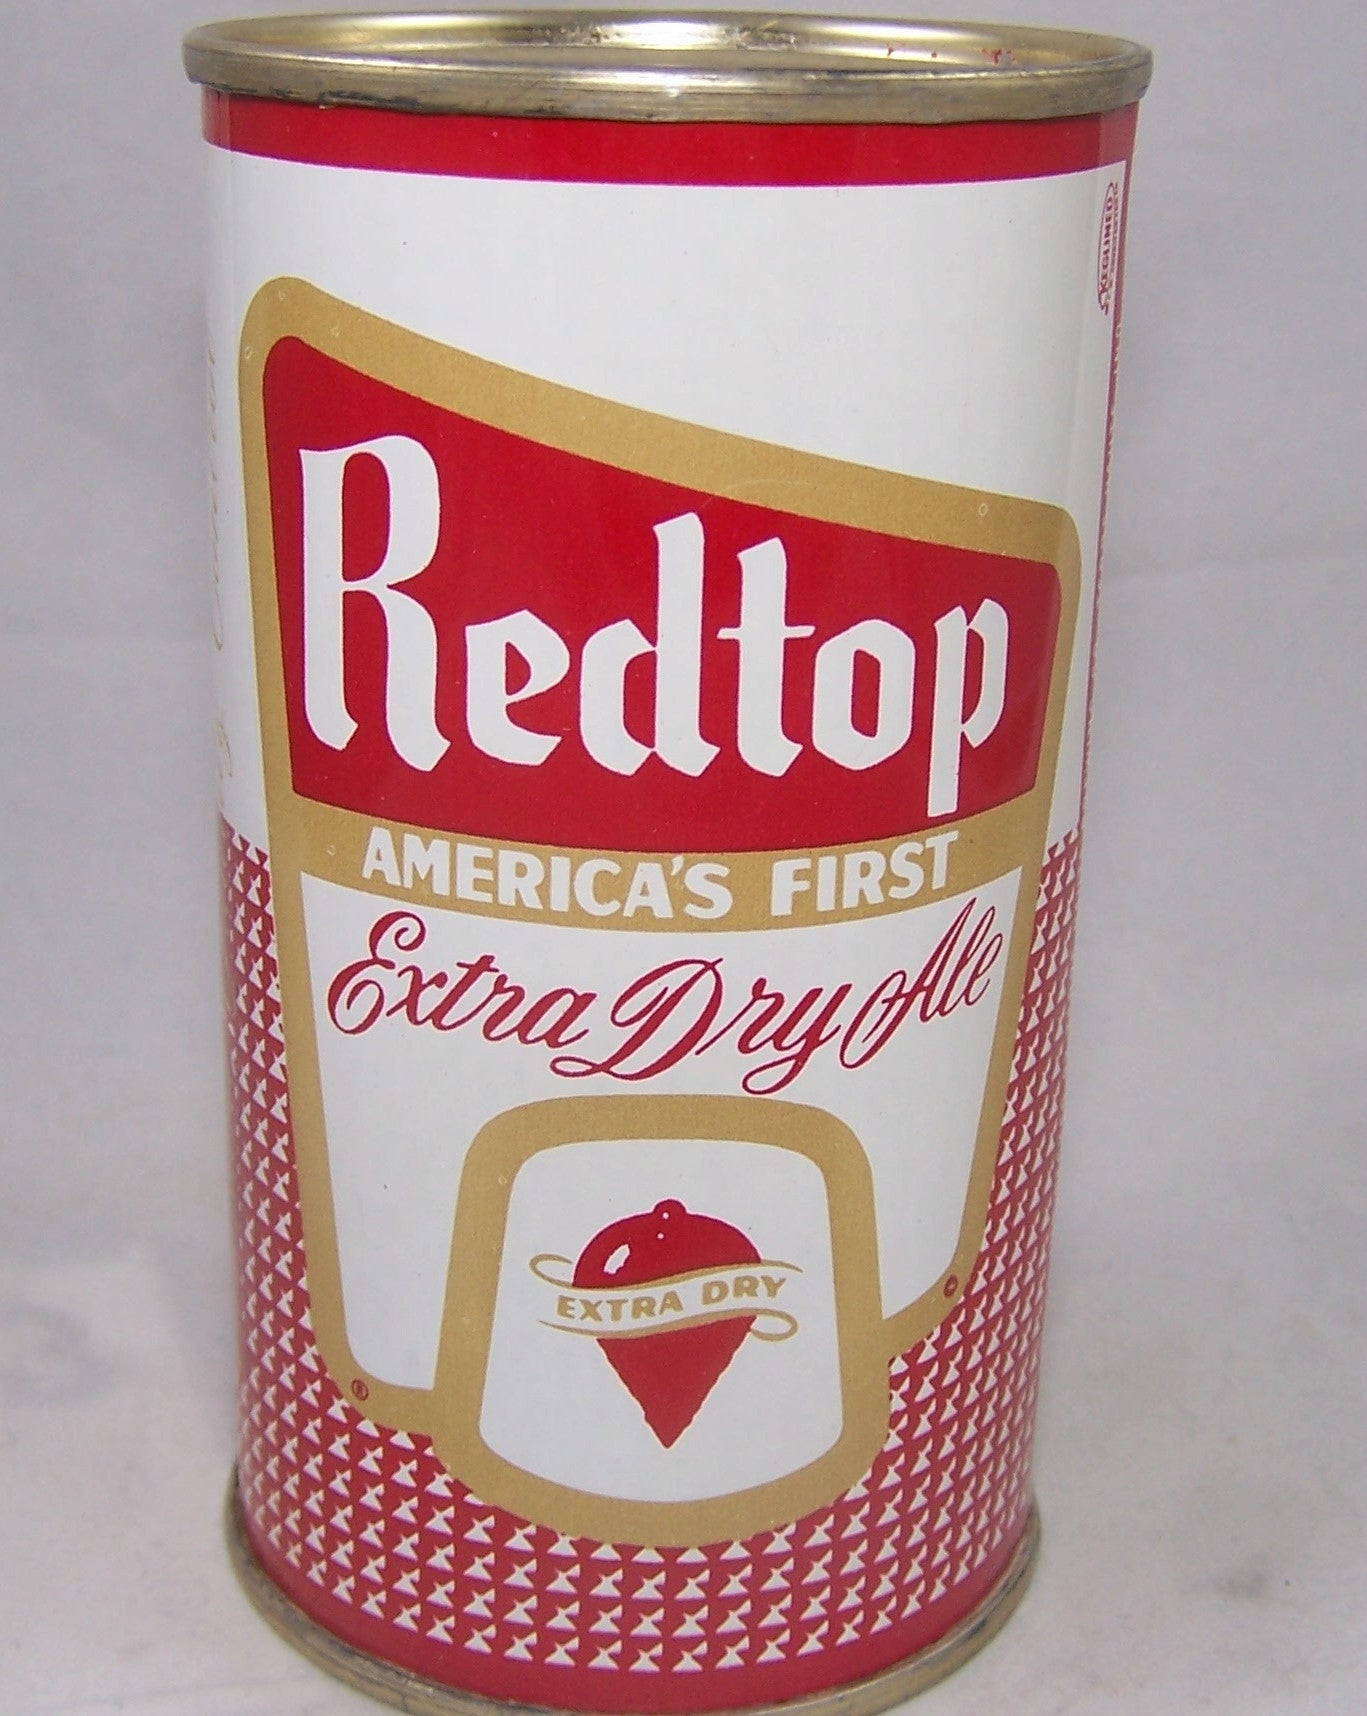 Redtop Extra Dry Ale, USBC N.L (Terre Haute) Rolled Short Sheet, Grade 1/1+ Sold on 09/19/16